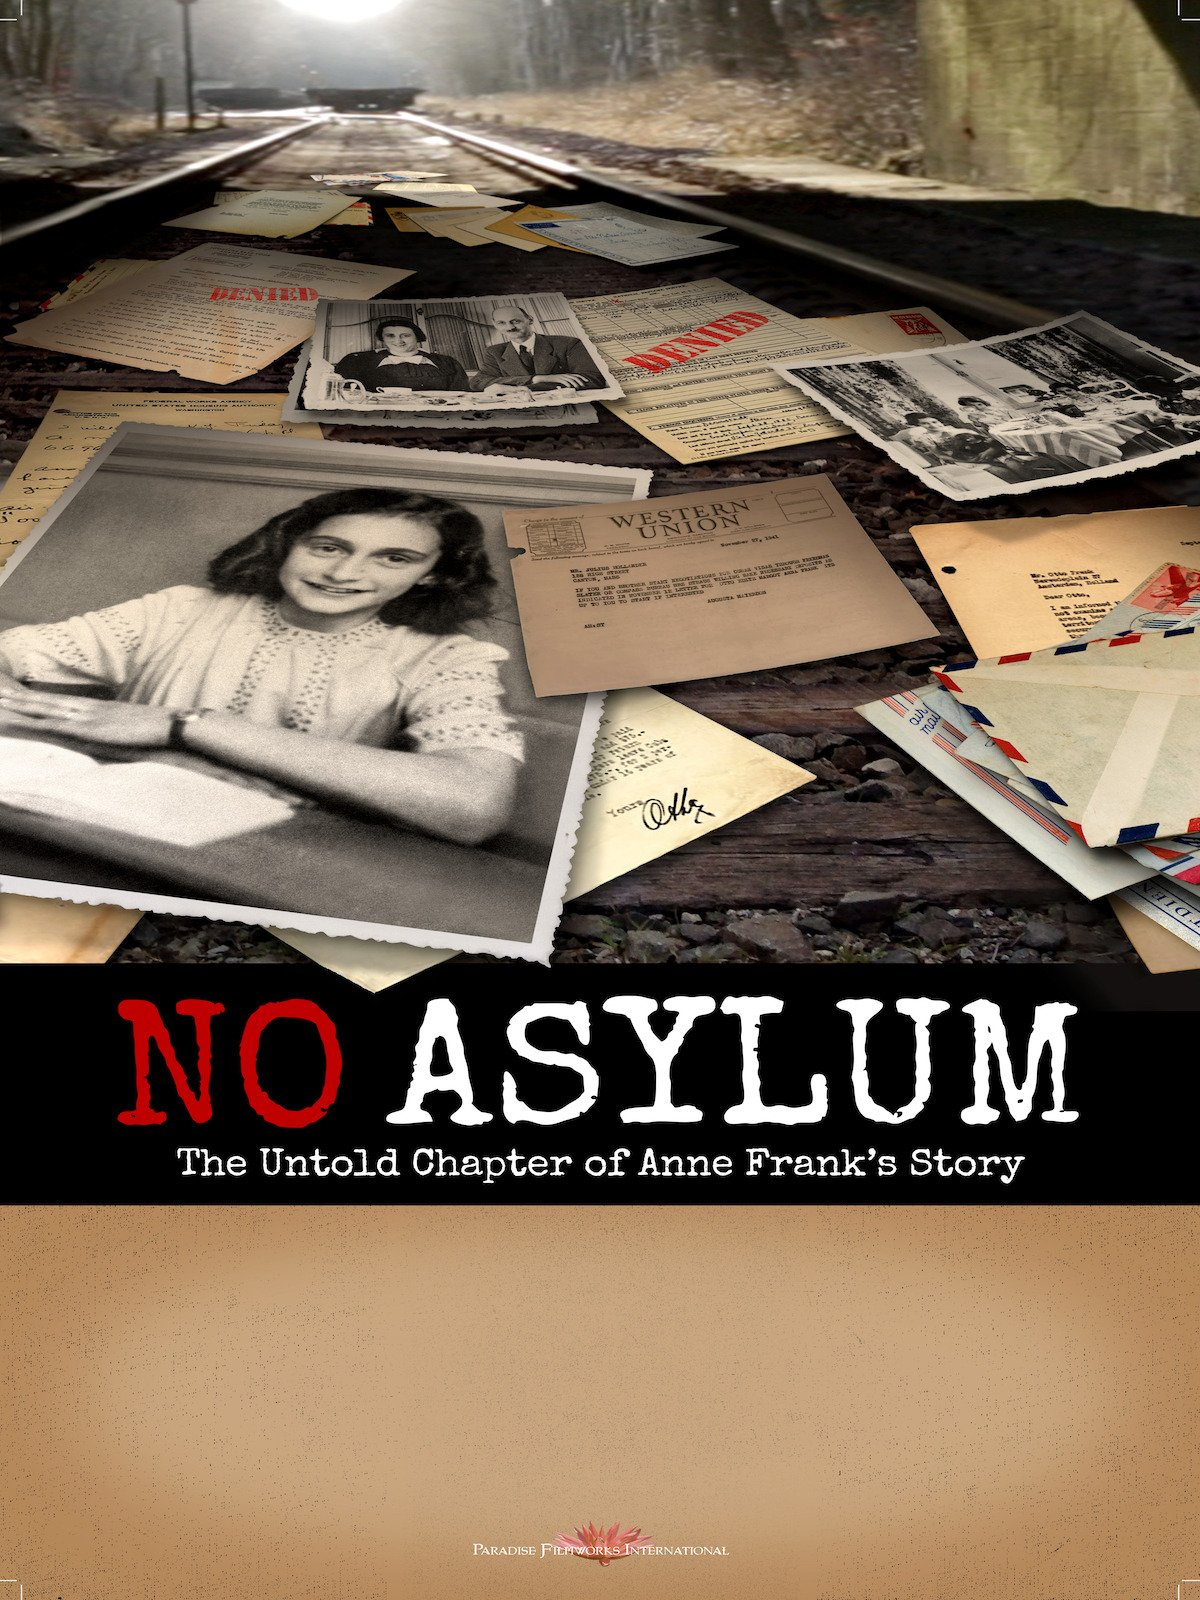 Amazon.com: No Asylum: The Untold Chapter of Anne Frank's Story ...